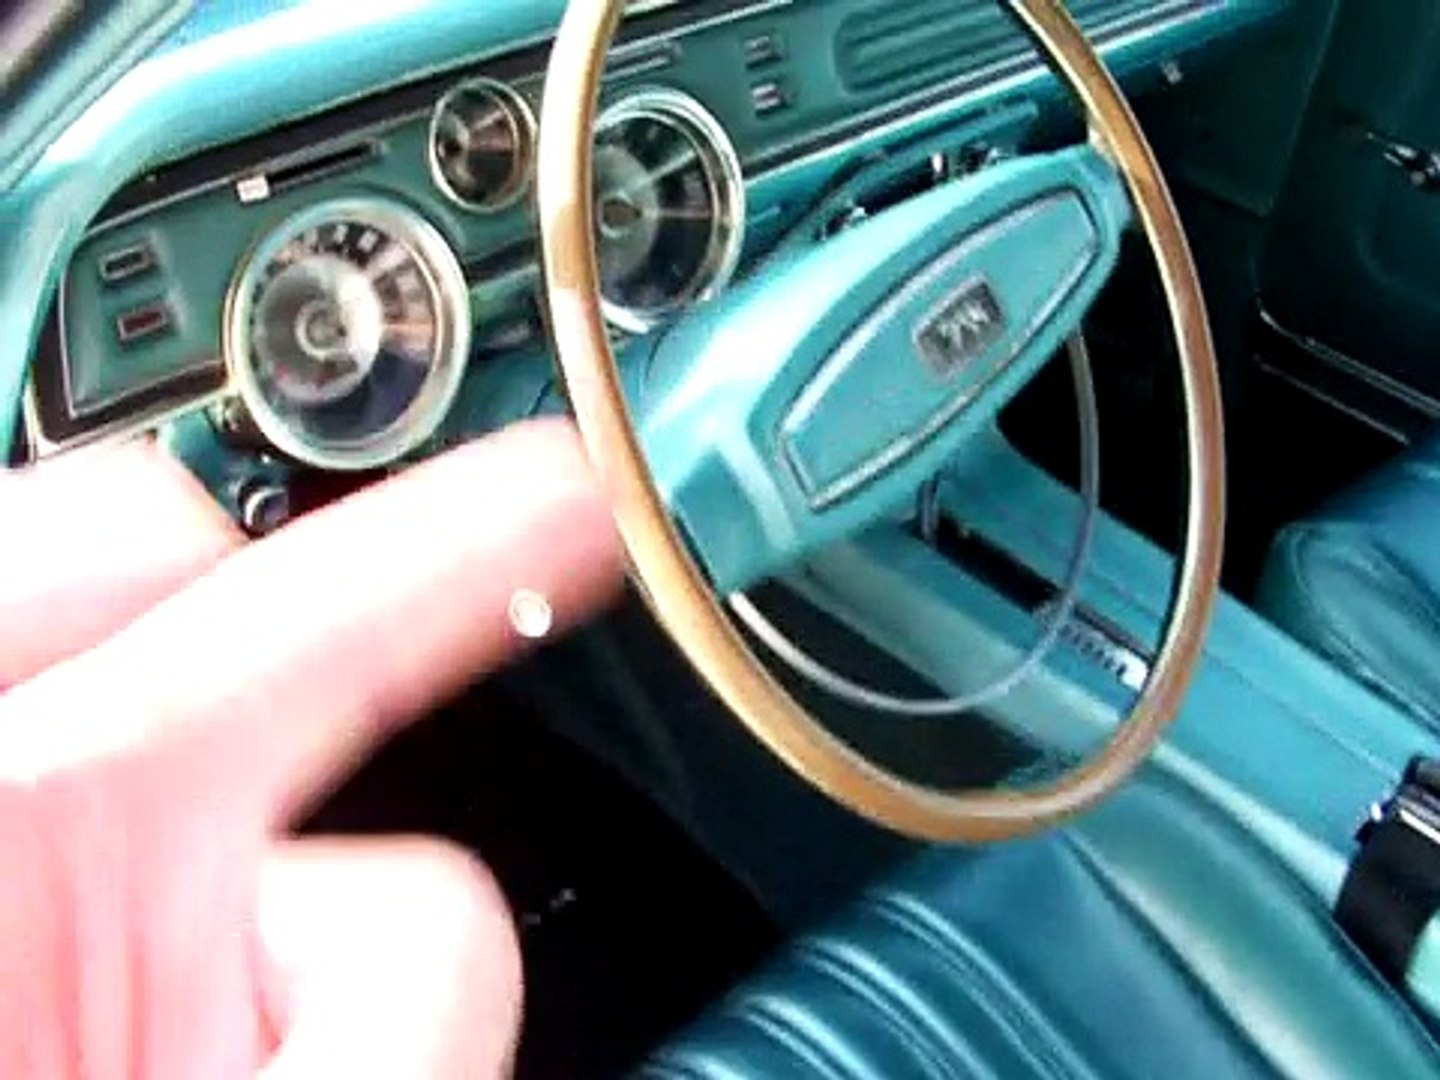 1968 MERCURY COUGAR GT-E 427 W CODE EXTREMLY RARE UPDATE SOLD!!!!